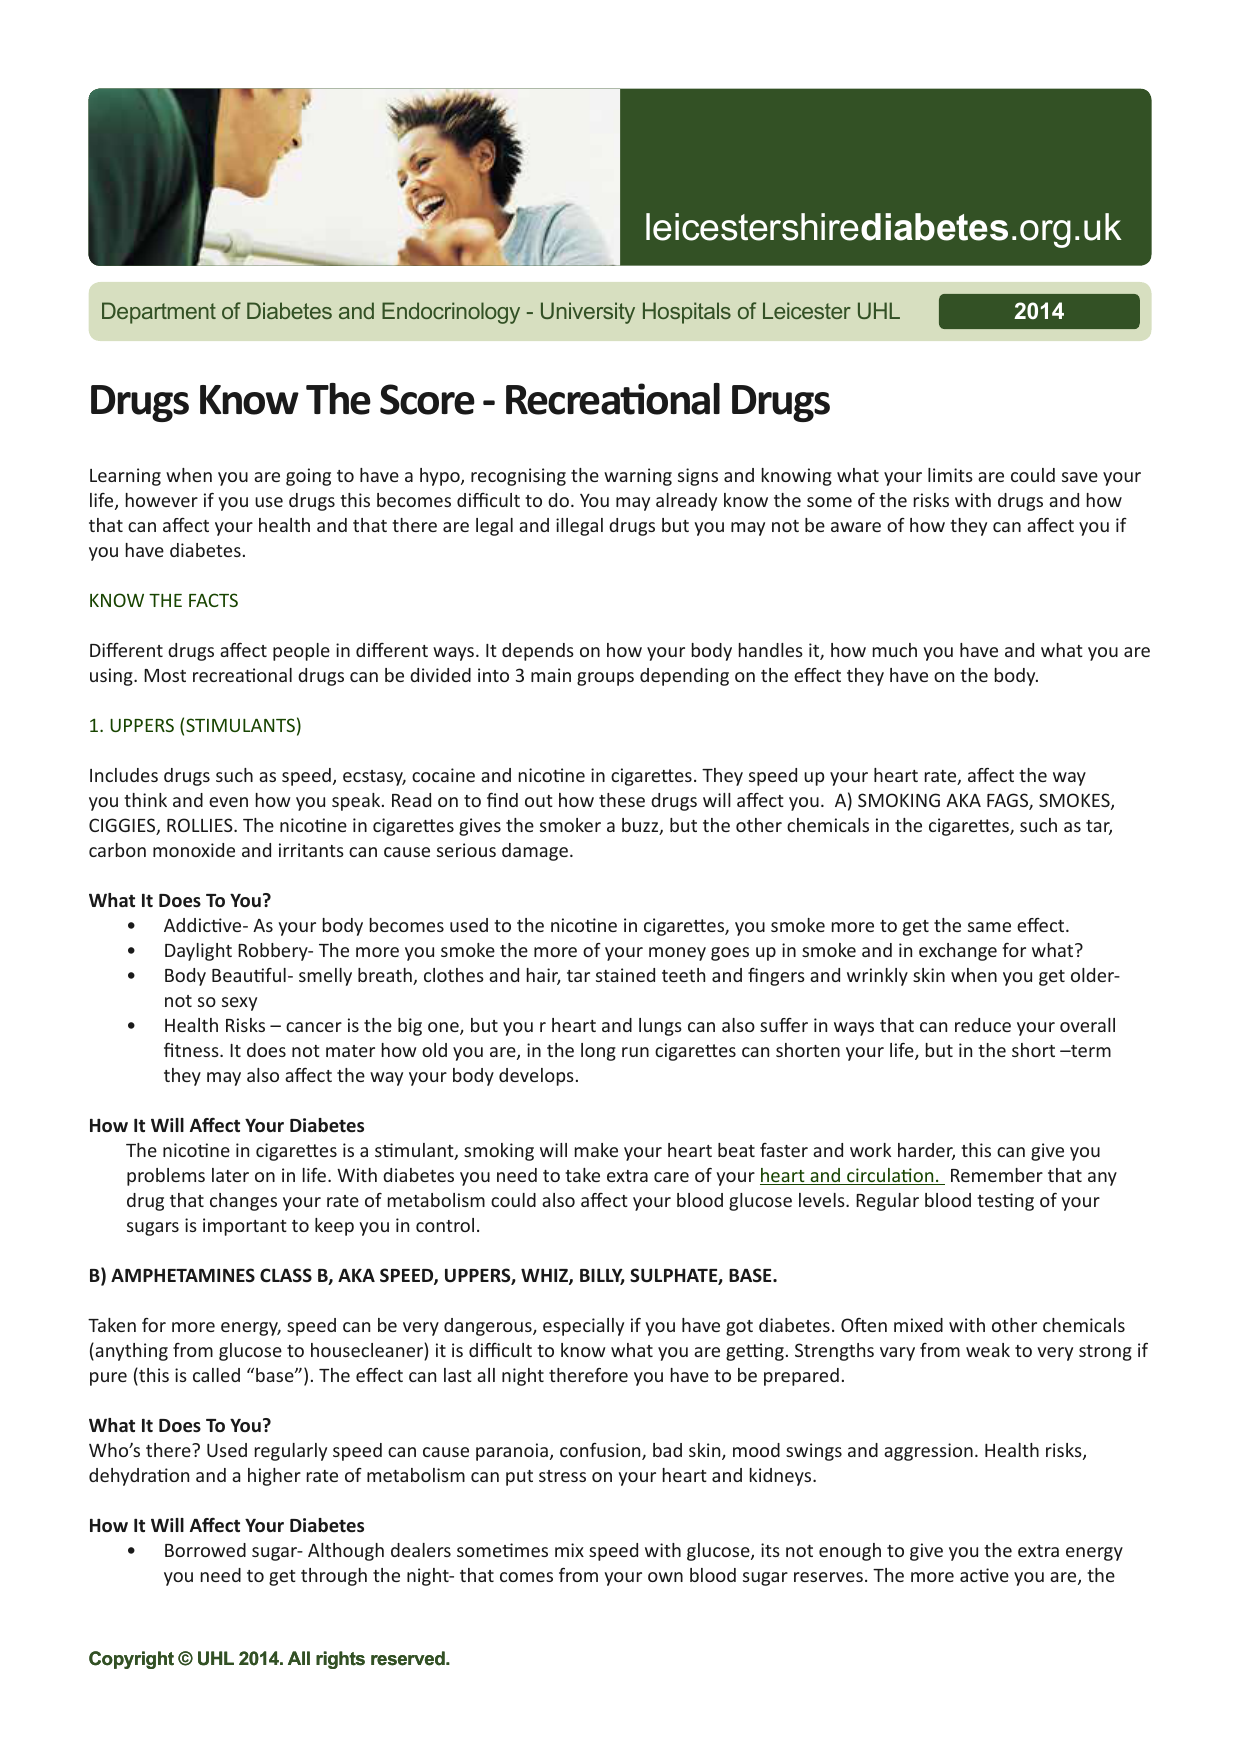 Drugs Know The Score - Recreational Drugs